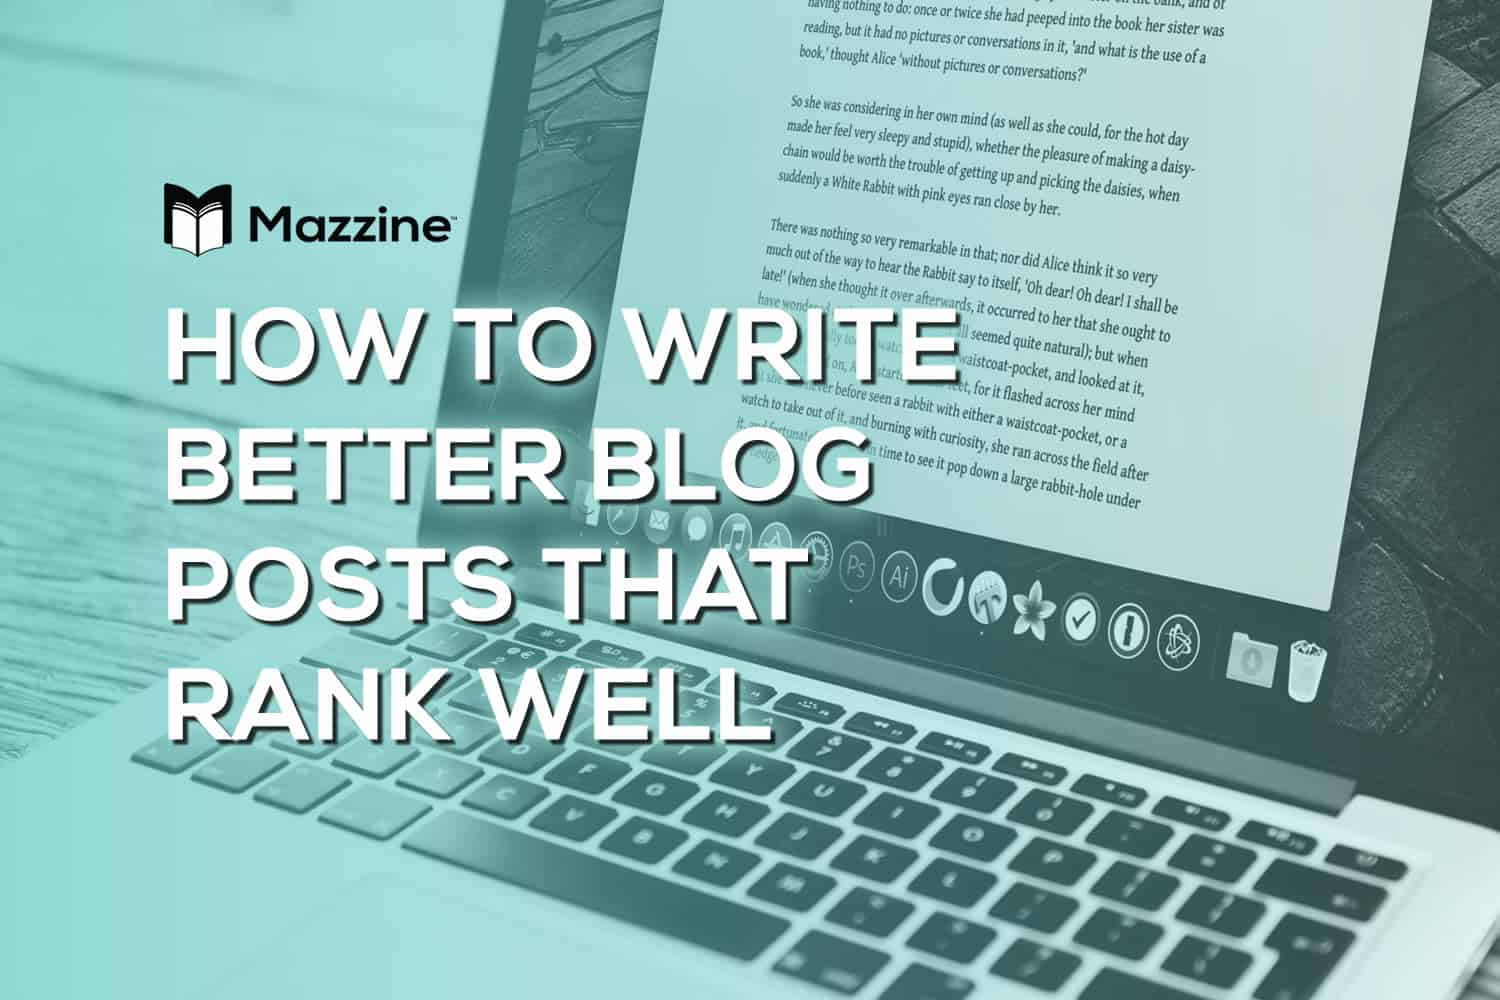 How to Write Better Blog Posts That Rank Well